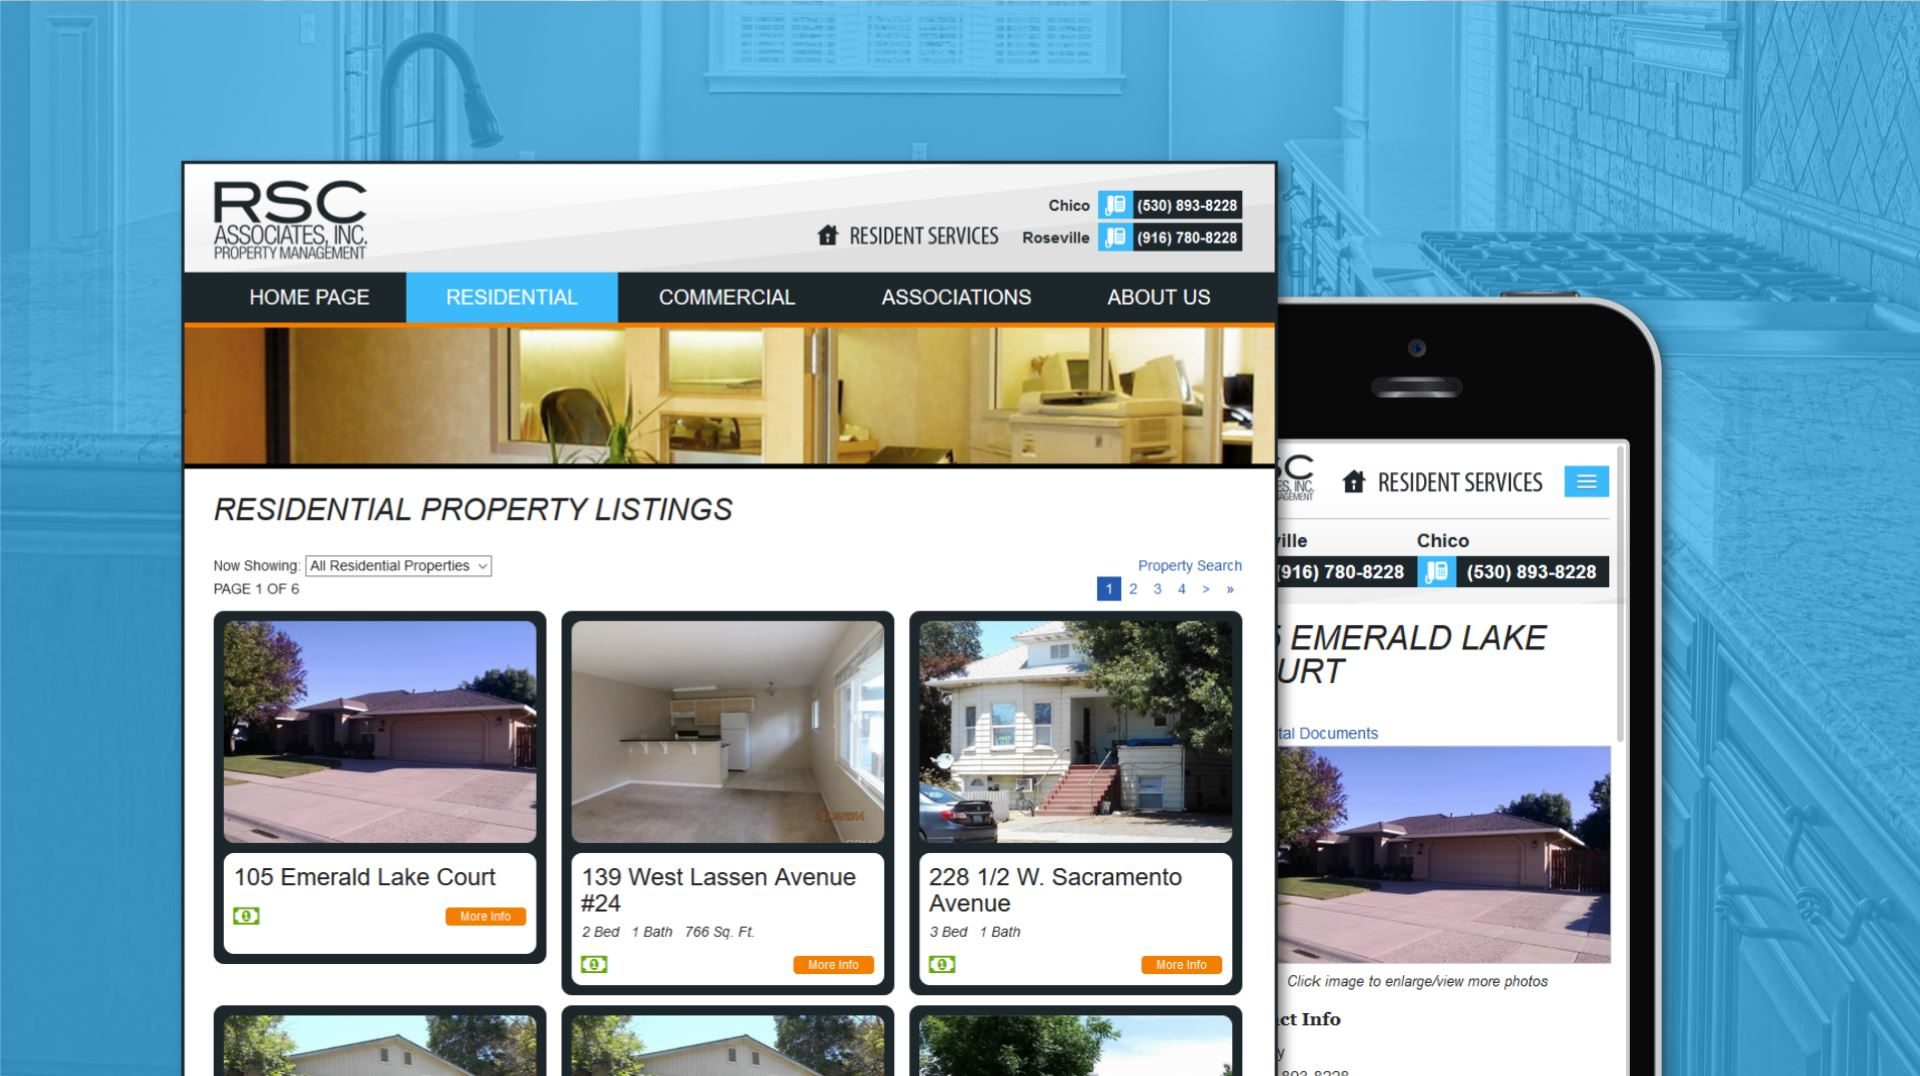 RSC Associates Property Listings.